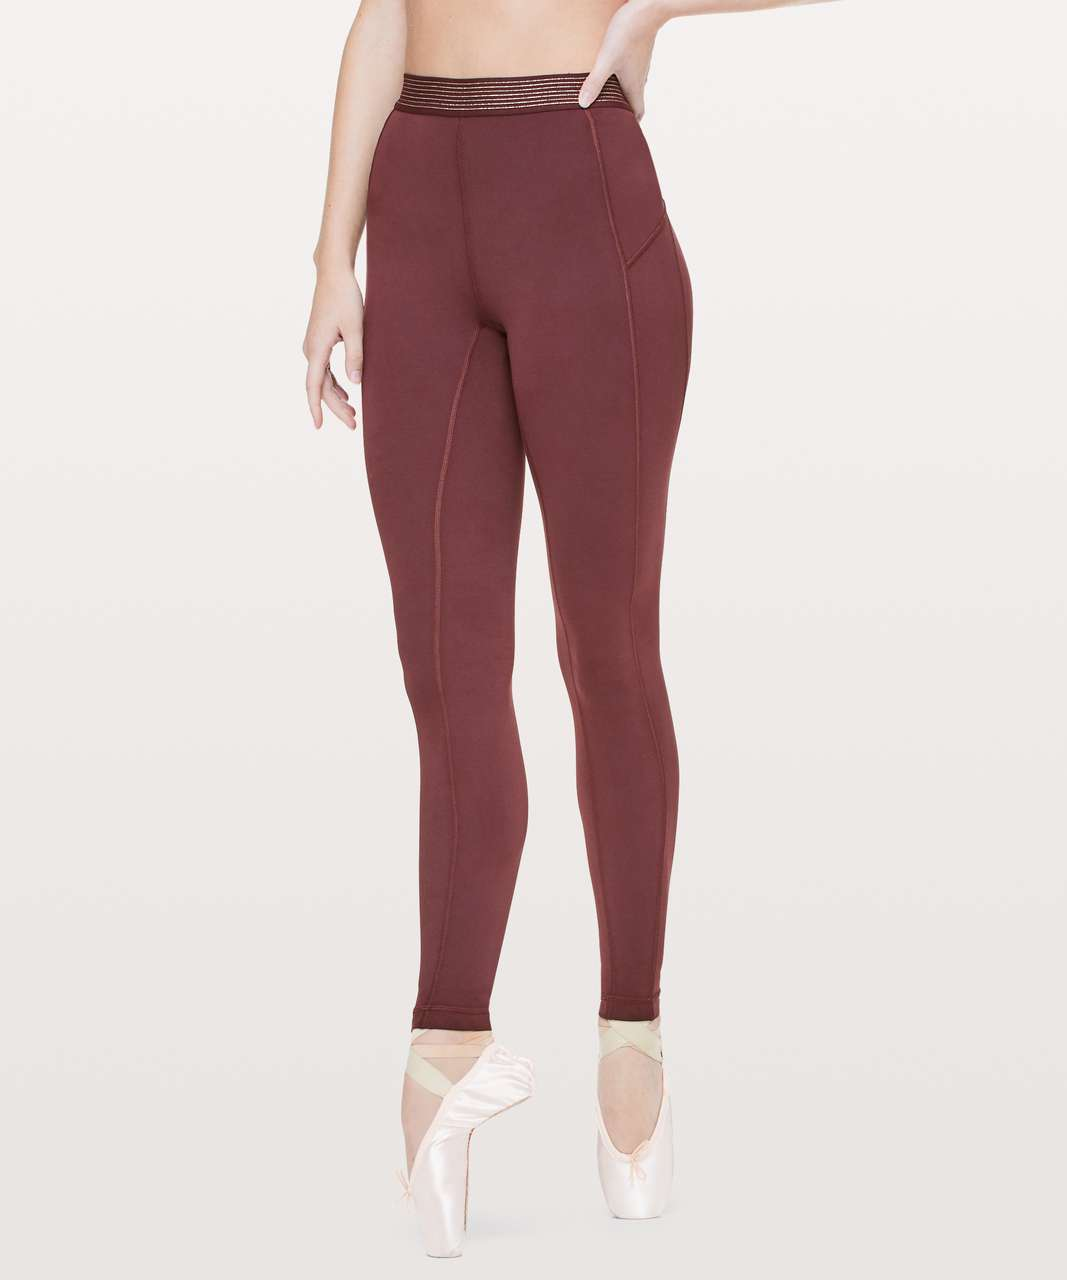 "Lululemon Principal Dancer Golden Lining Tight *28"" - Midnight Maroon"